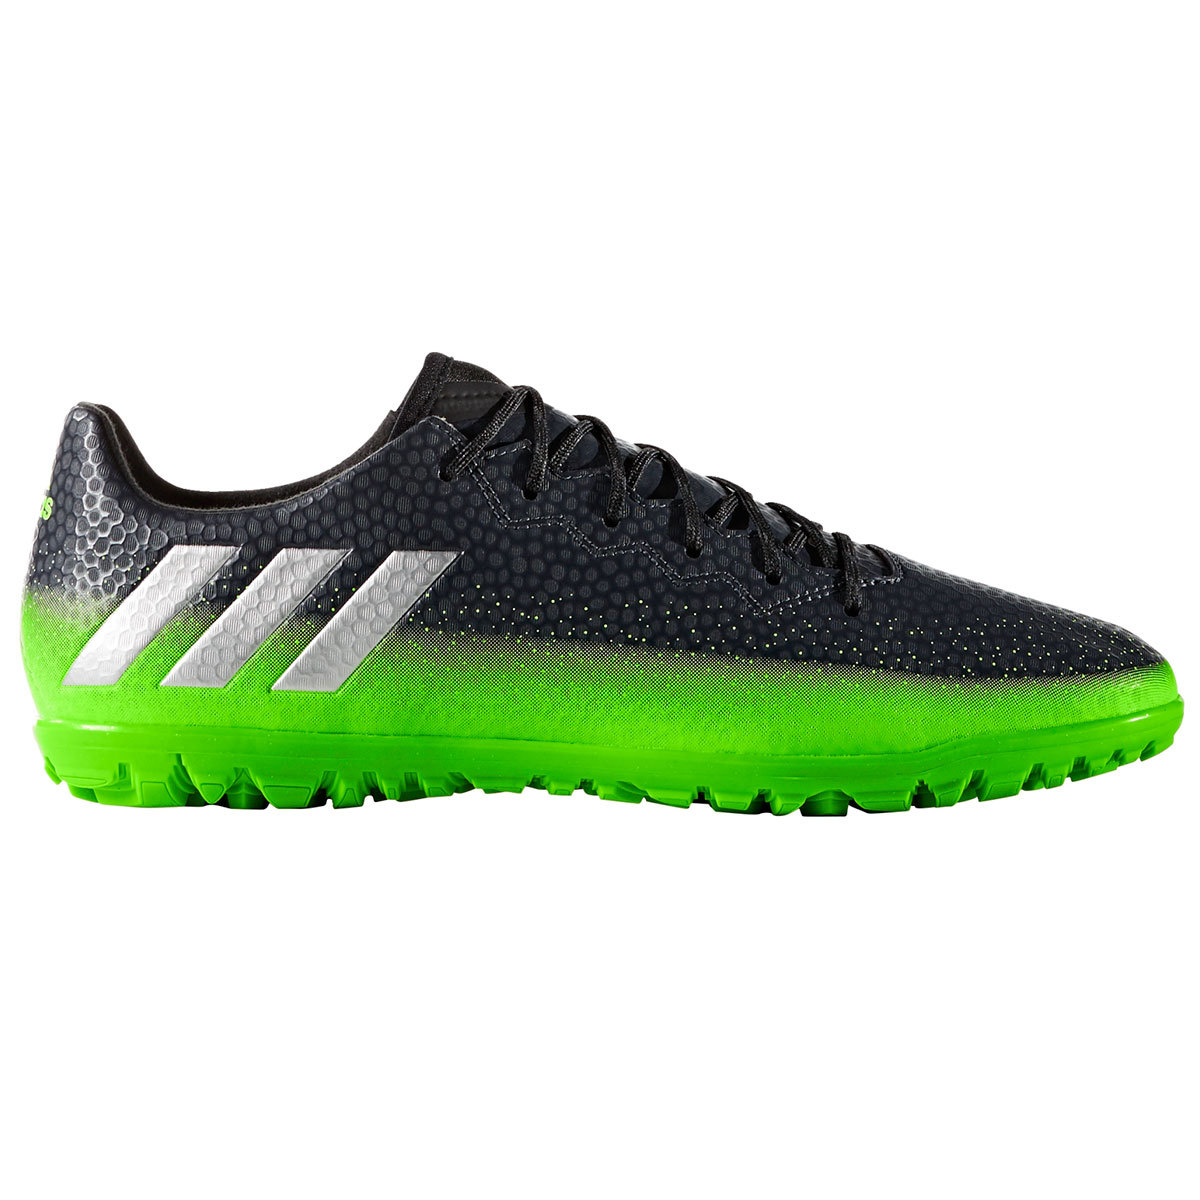 messi turf soccer shoes cheap online